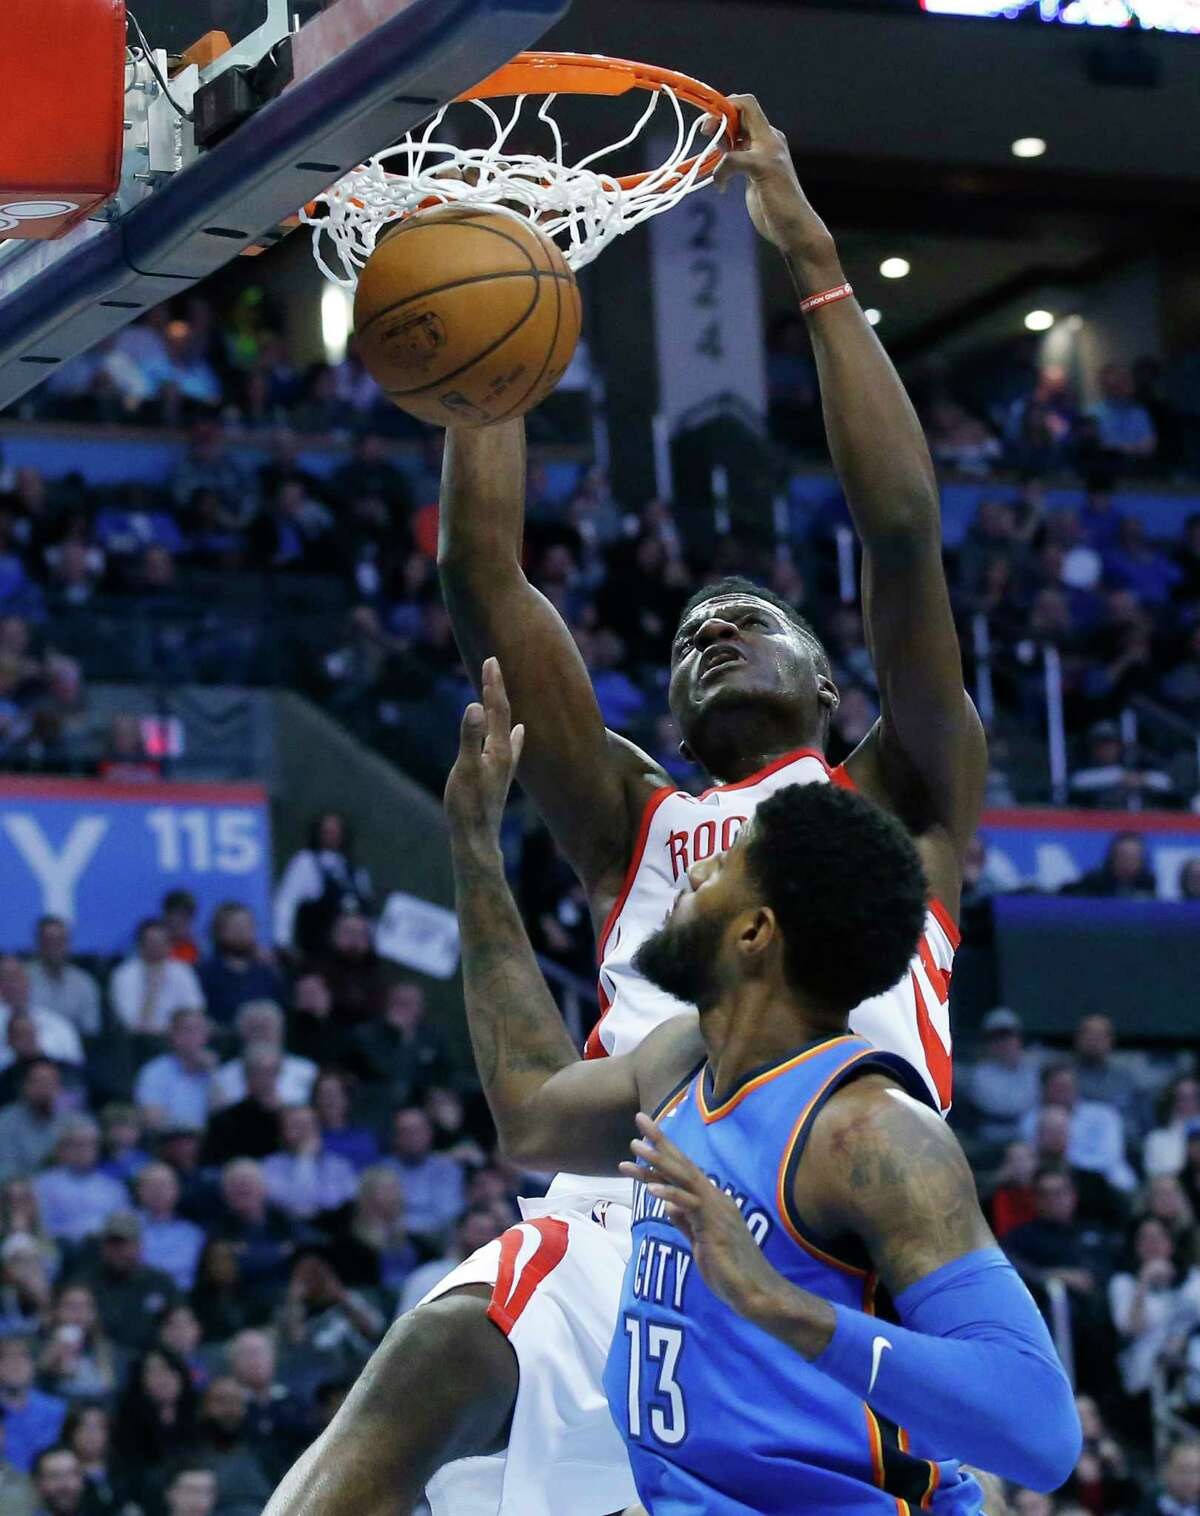 Houston Rockets center Clint Capela, rear, dunks over Oklahoma City Thunder forward Paul George (13) in the first half of an NBA basketball game in Oklahoma City, Tuesday, March 6, 2018. (AP Photo/Sue Ogrocki)